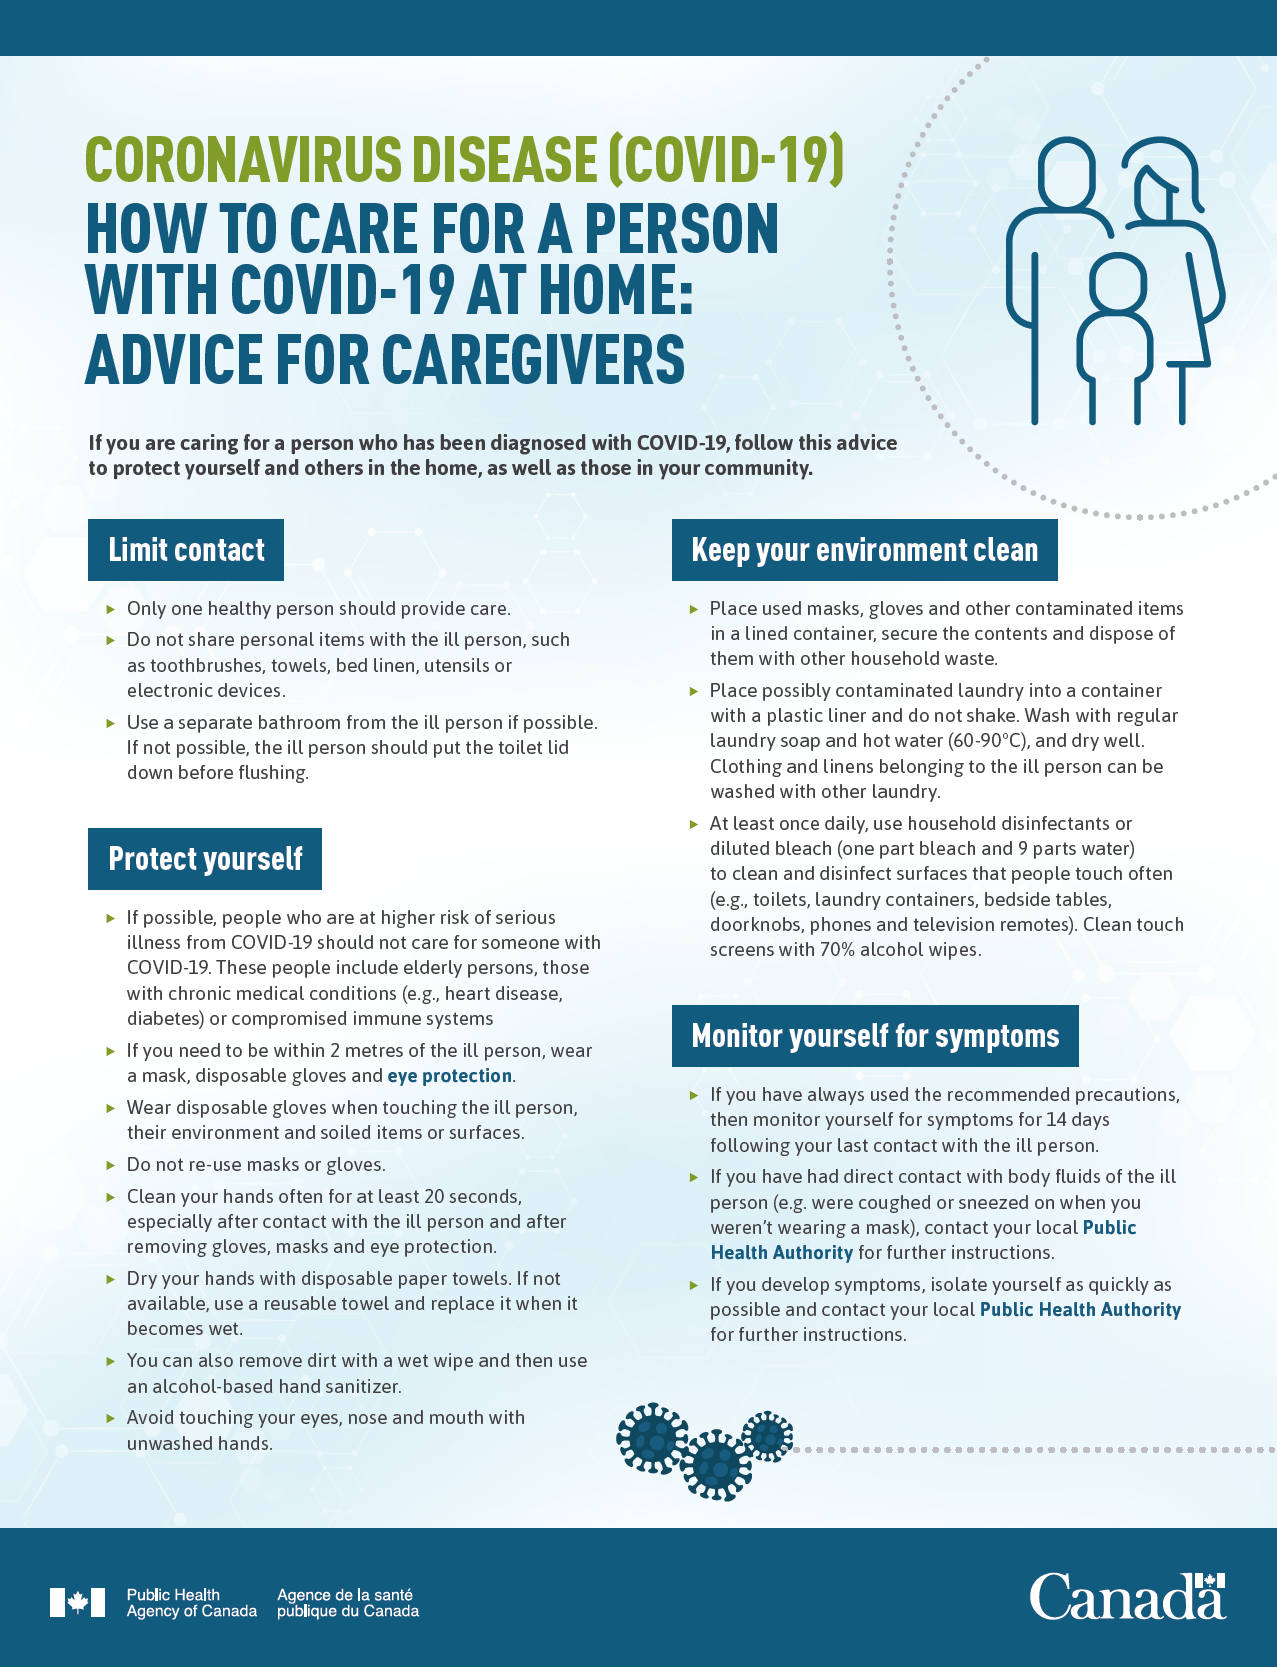 HOW TO CARE FOR A PERSON WITH COVID-19 AT HOME: ADVICE FOR CAREGIVERS